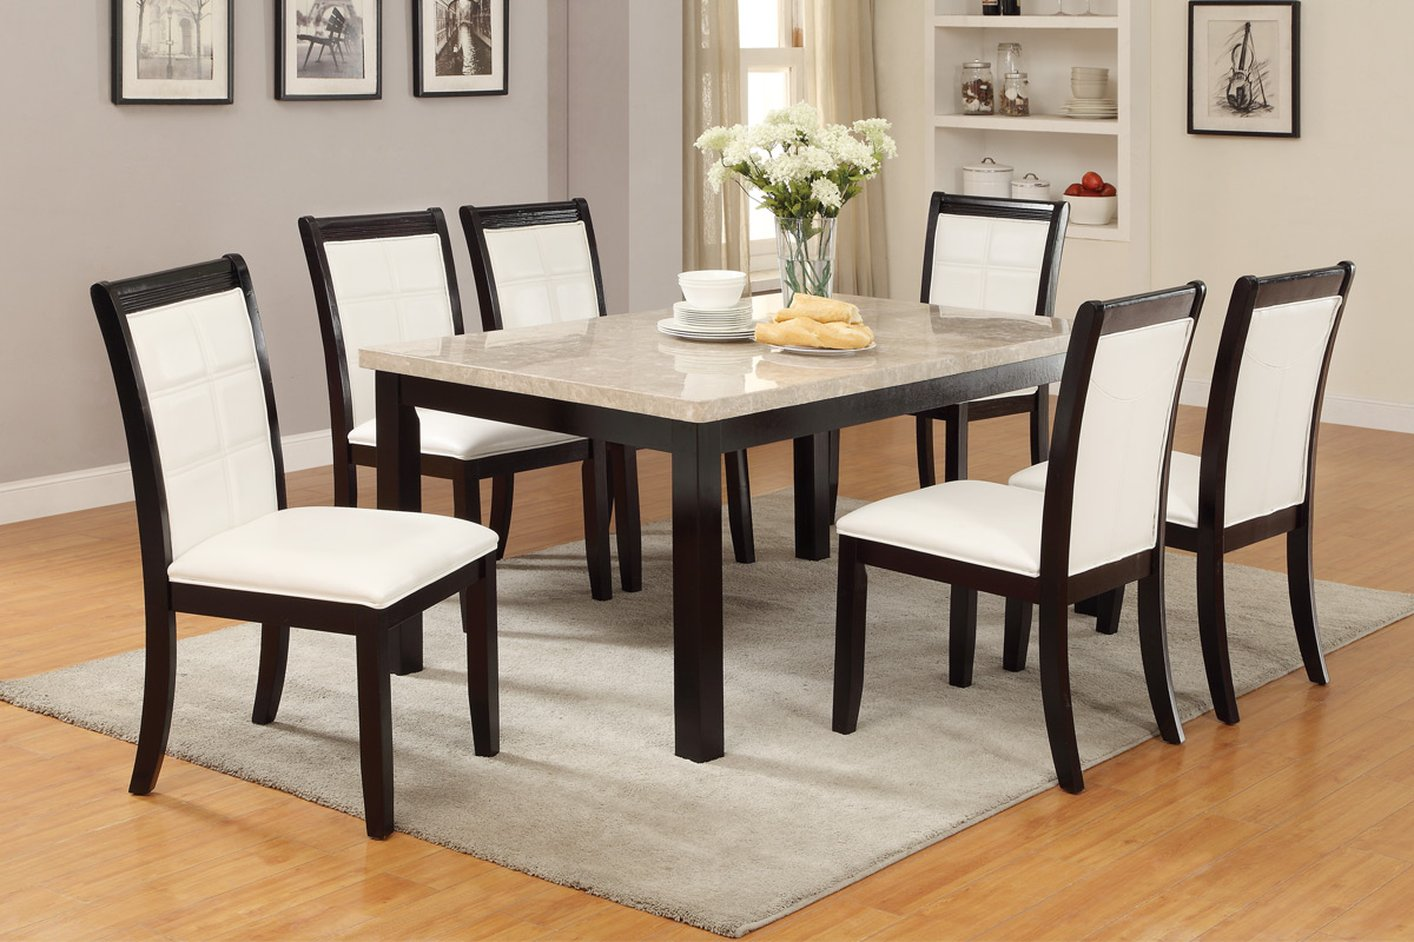 Brown Marble Dining Table Steal A Sofa Furniture Outlet